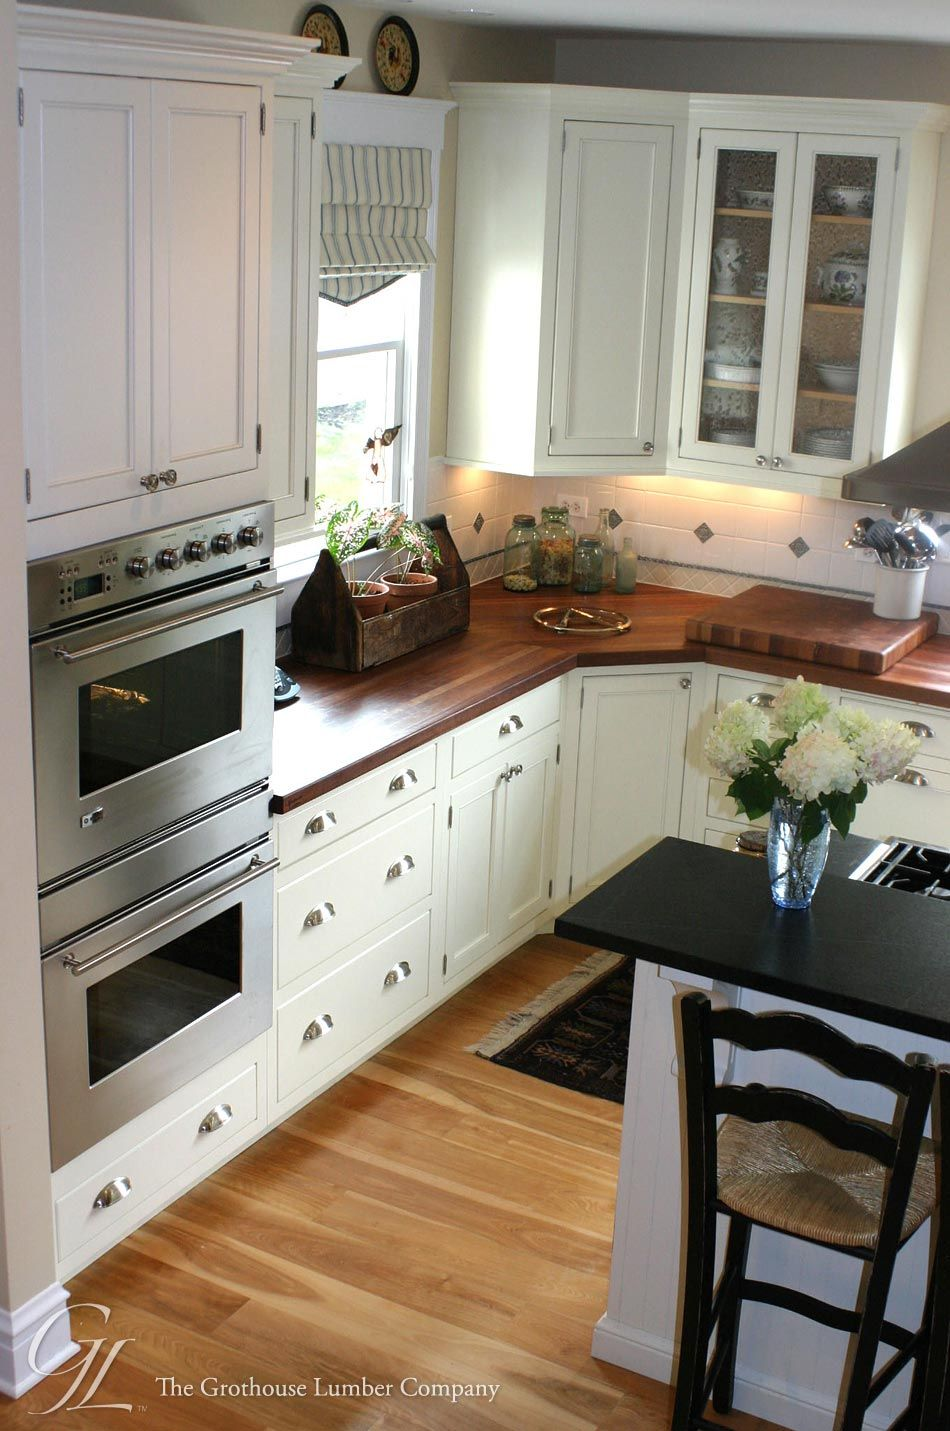 Light floor white cabinets dark wood countertops custom american cherry wood countertop